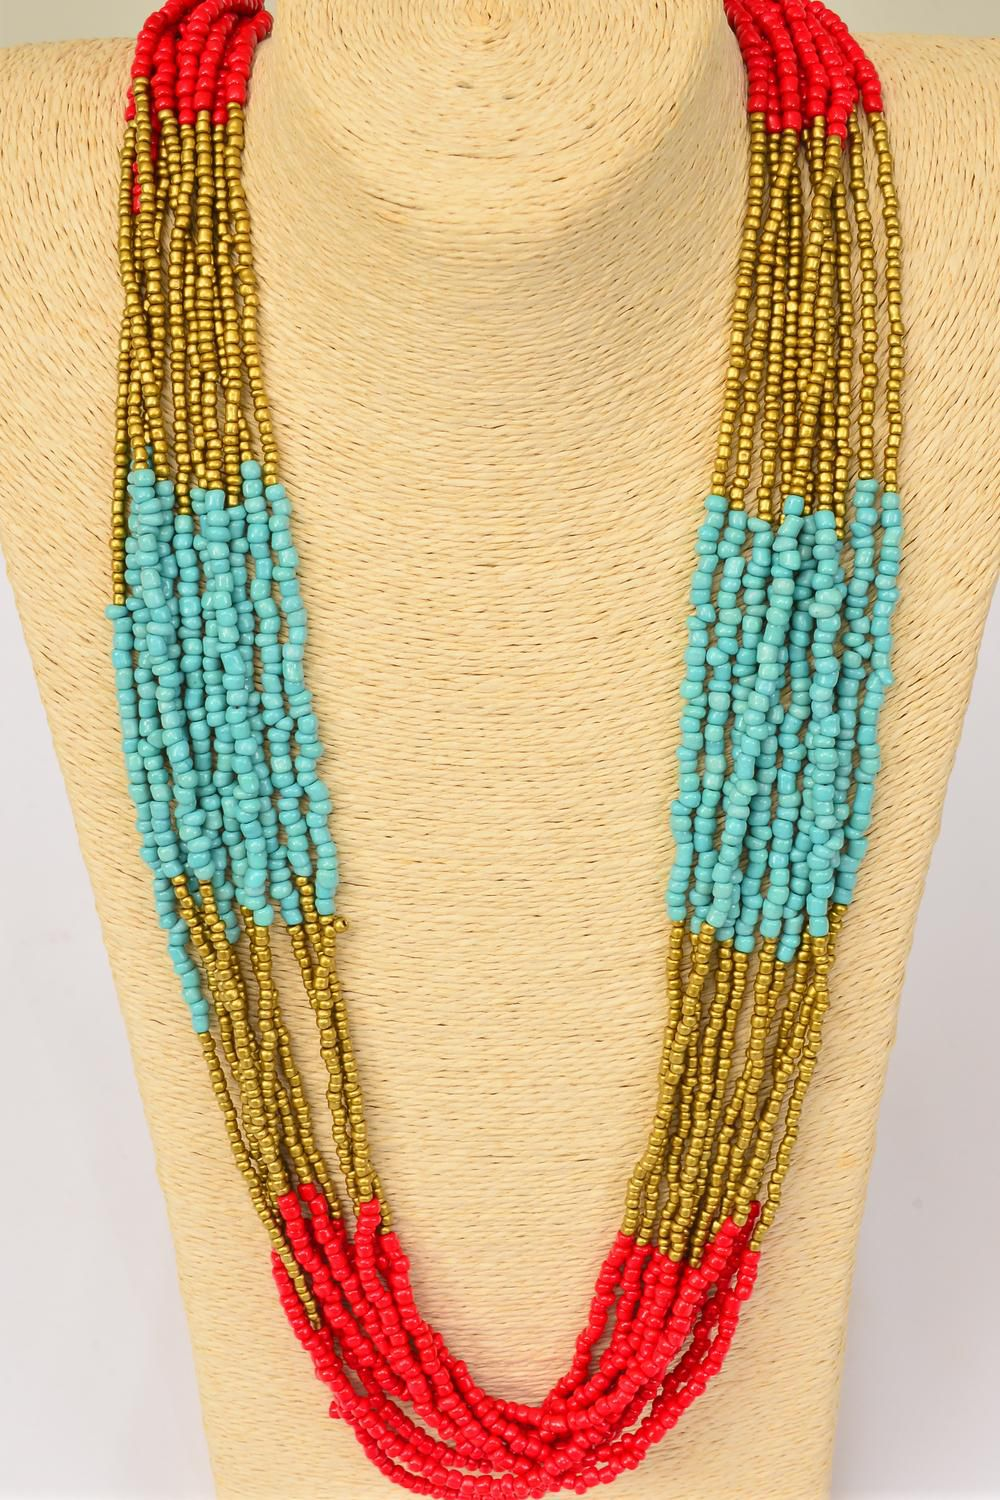 "Necklace Bohemian Look Indian Beads Red & Turquoise Mix/PC Size- 26"" Long,Display Card & OPP Bag & UPC Code"